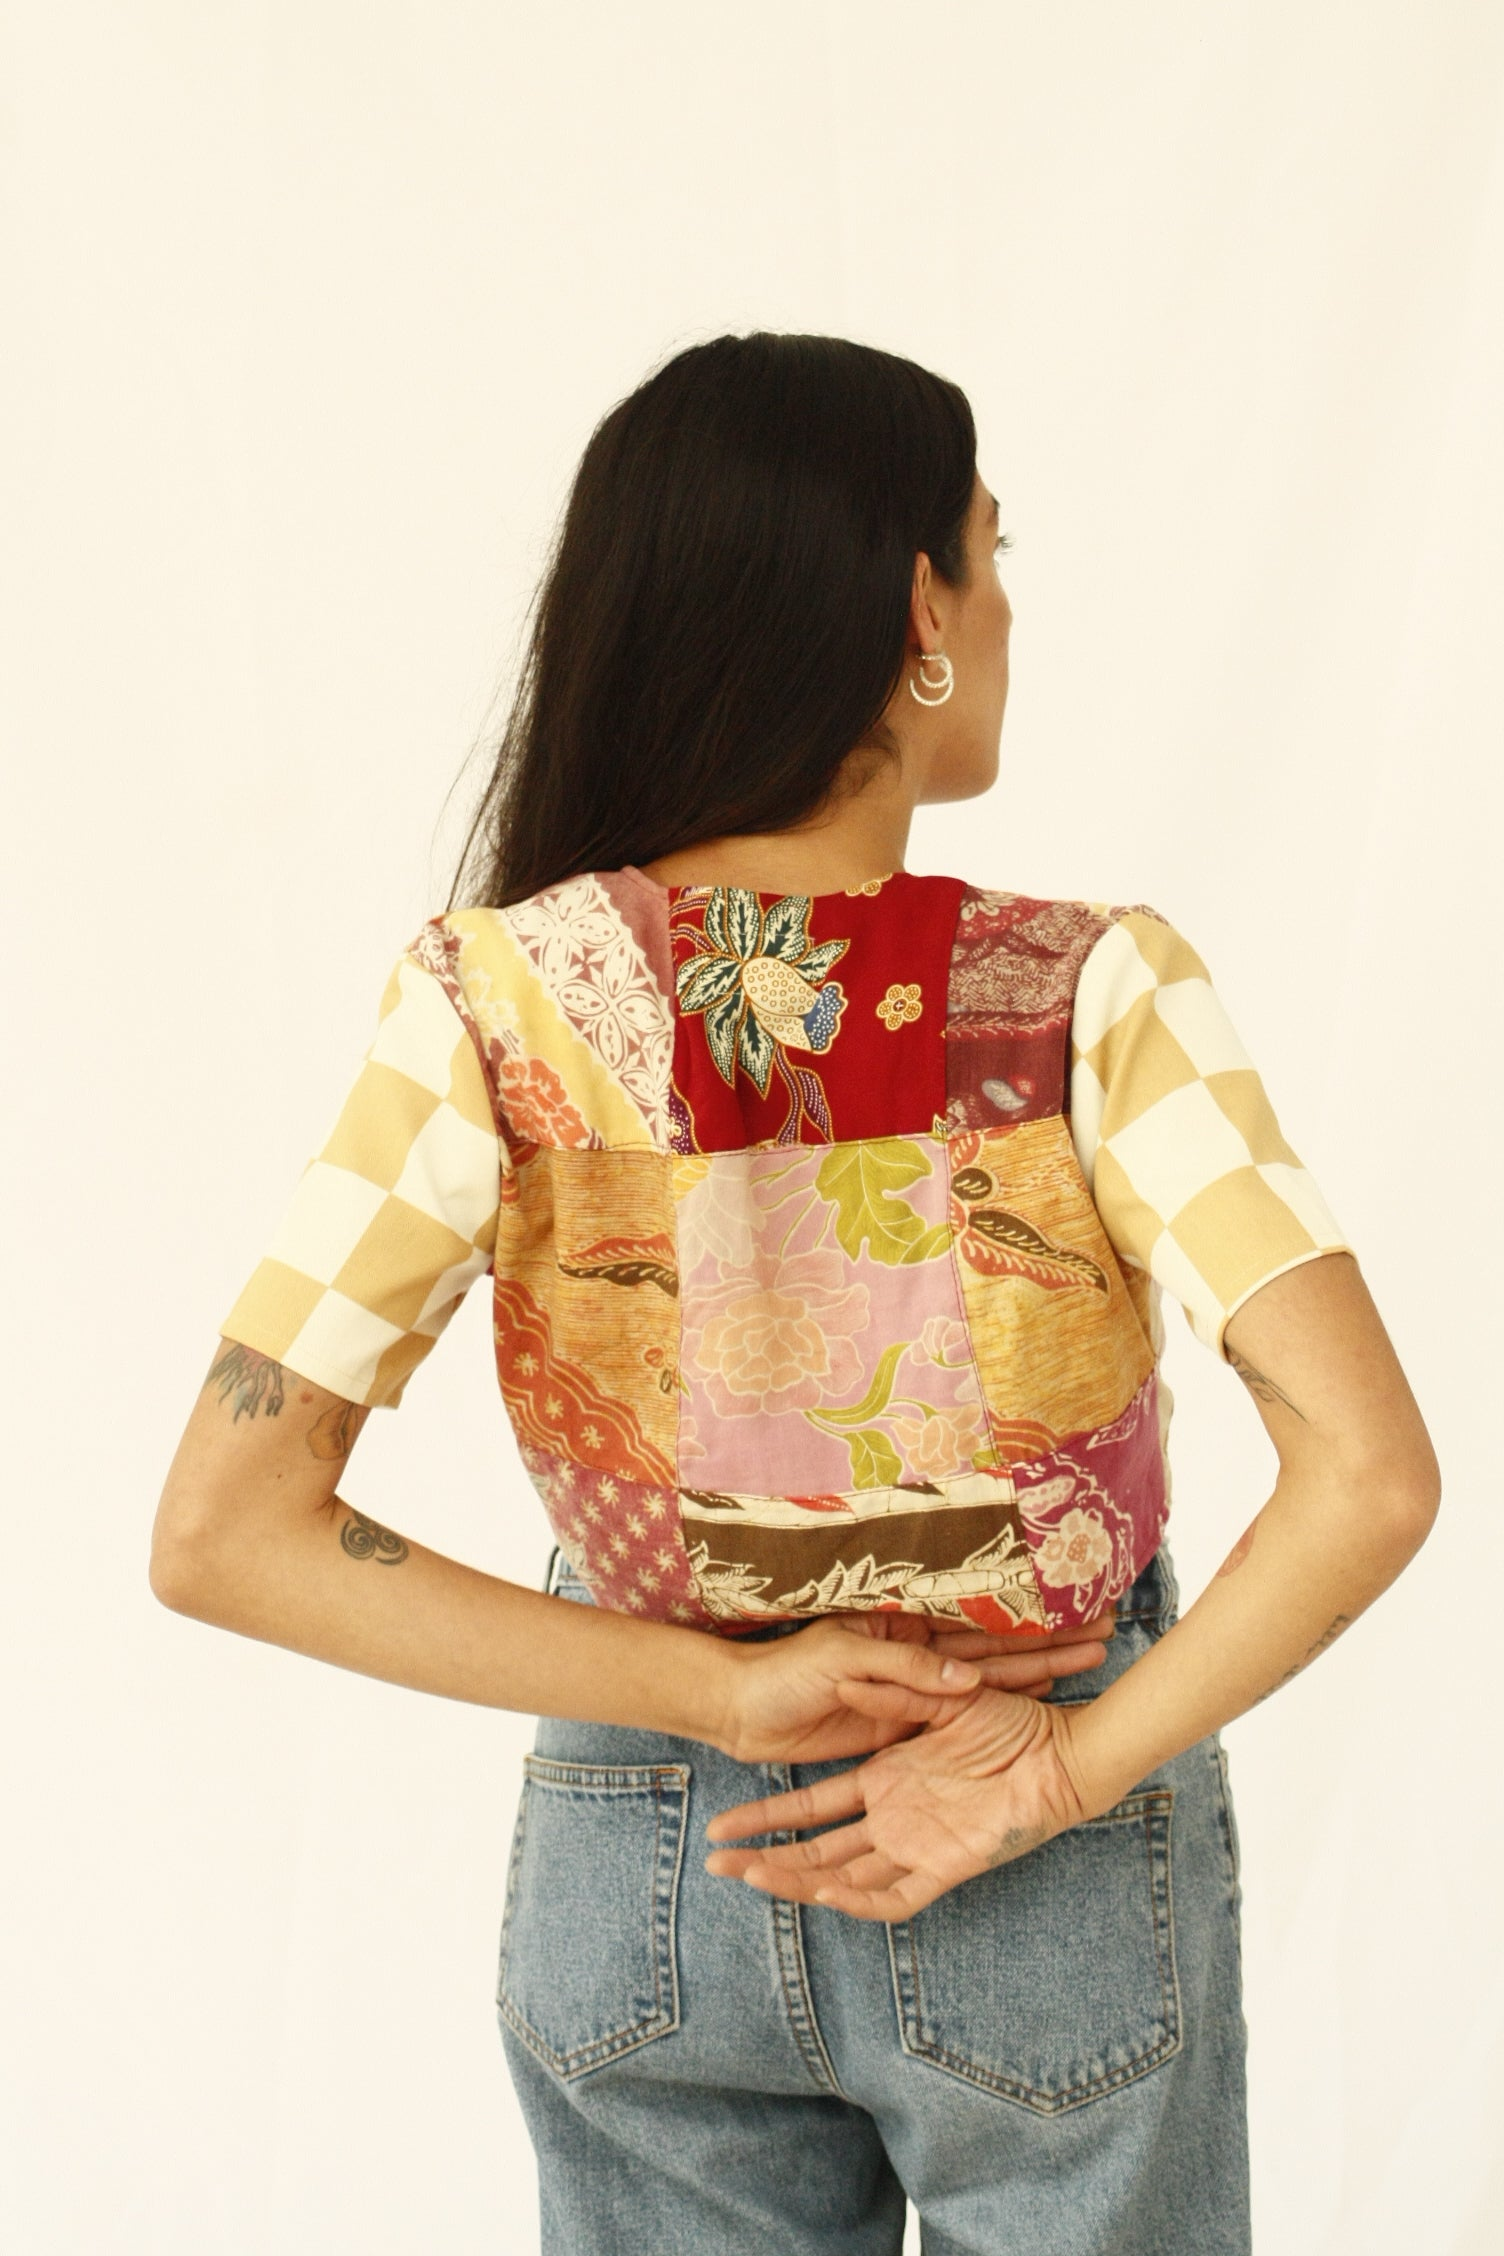 The fabric of this garment was found in Nishiki Market, Kyoto. The design was inspired by the street style, art and architecture of Japan. Deadstock pieces of fabric from India, Africa and Japan sewn together. Patchwork crop top with history, a statement garment for a lifetime. INGREDIENTS 100% cotton Mother of pearl buttons (concha de nacar) Ethically made in Ecuador. Sustainable fashion, handmade, natural fibers, vintage textiles and upcycled materials.